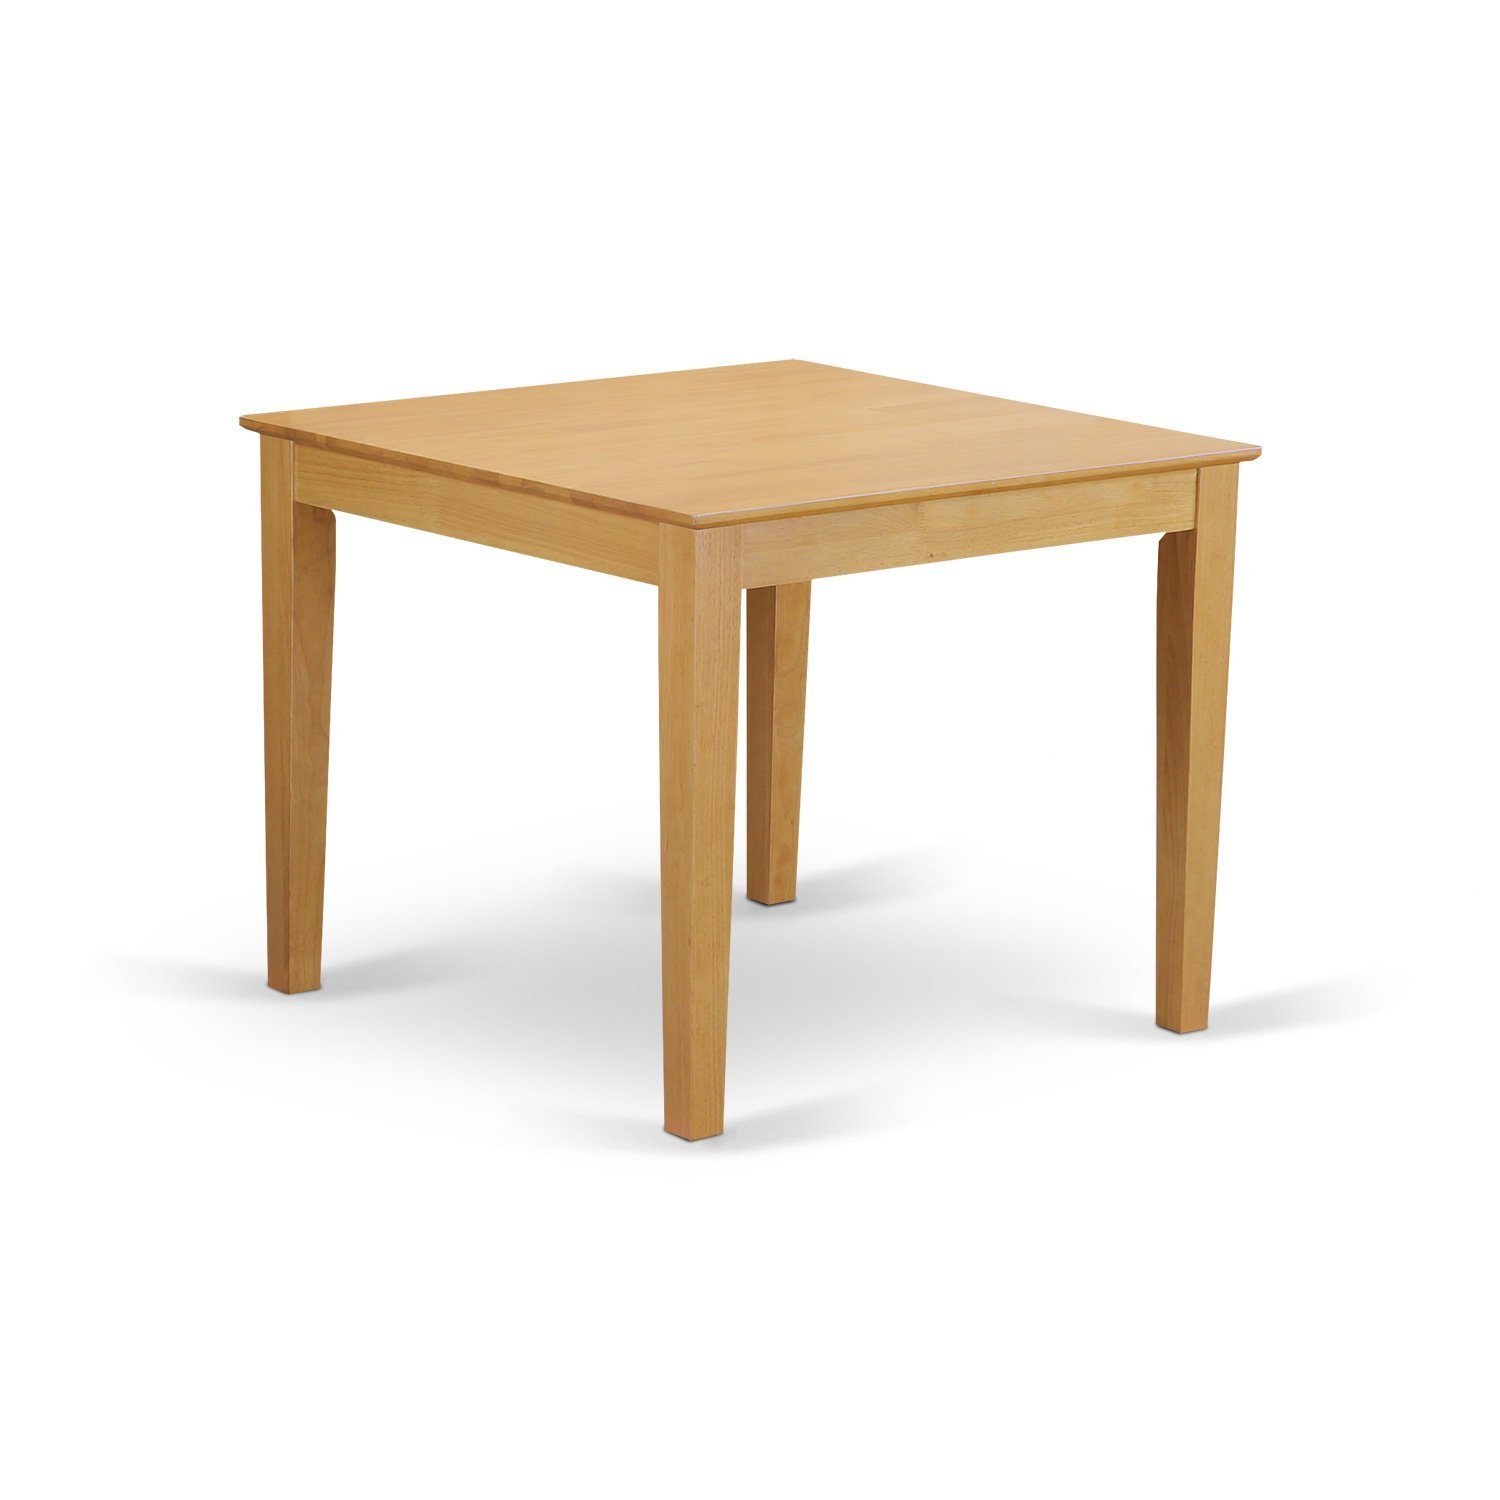 East West Furniture OXT-Oak-T Oxford Square Dining Table